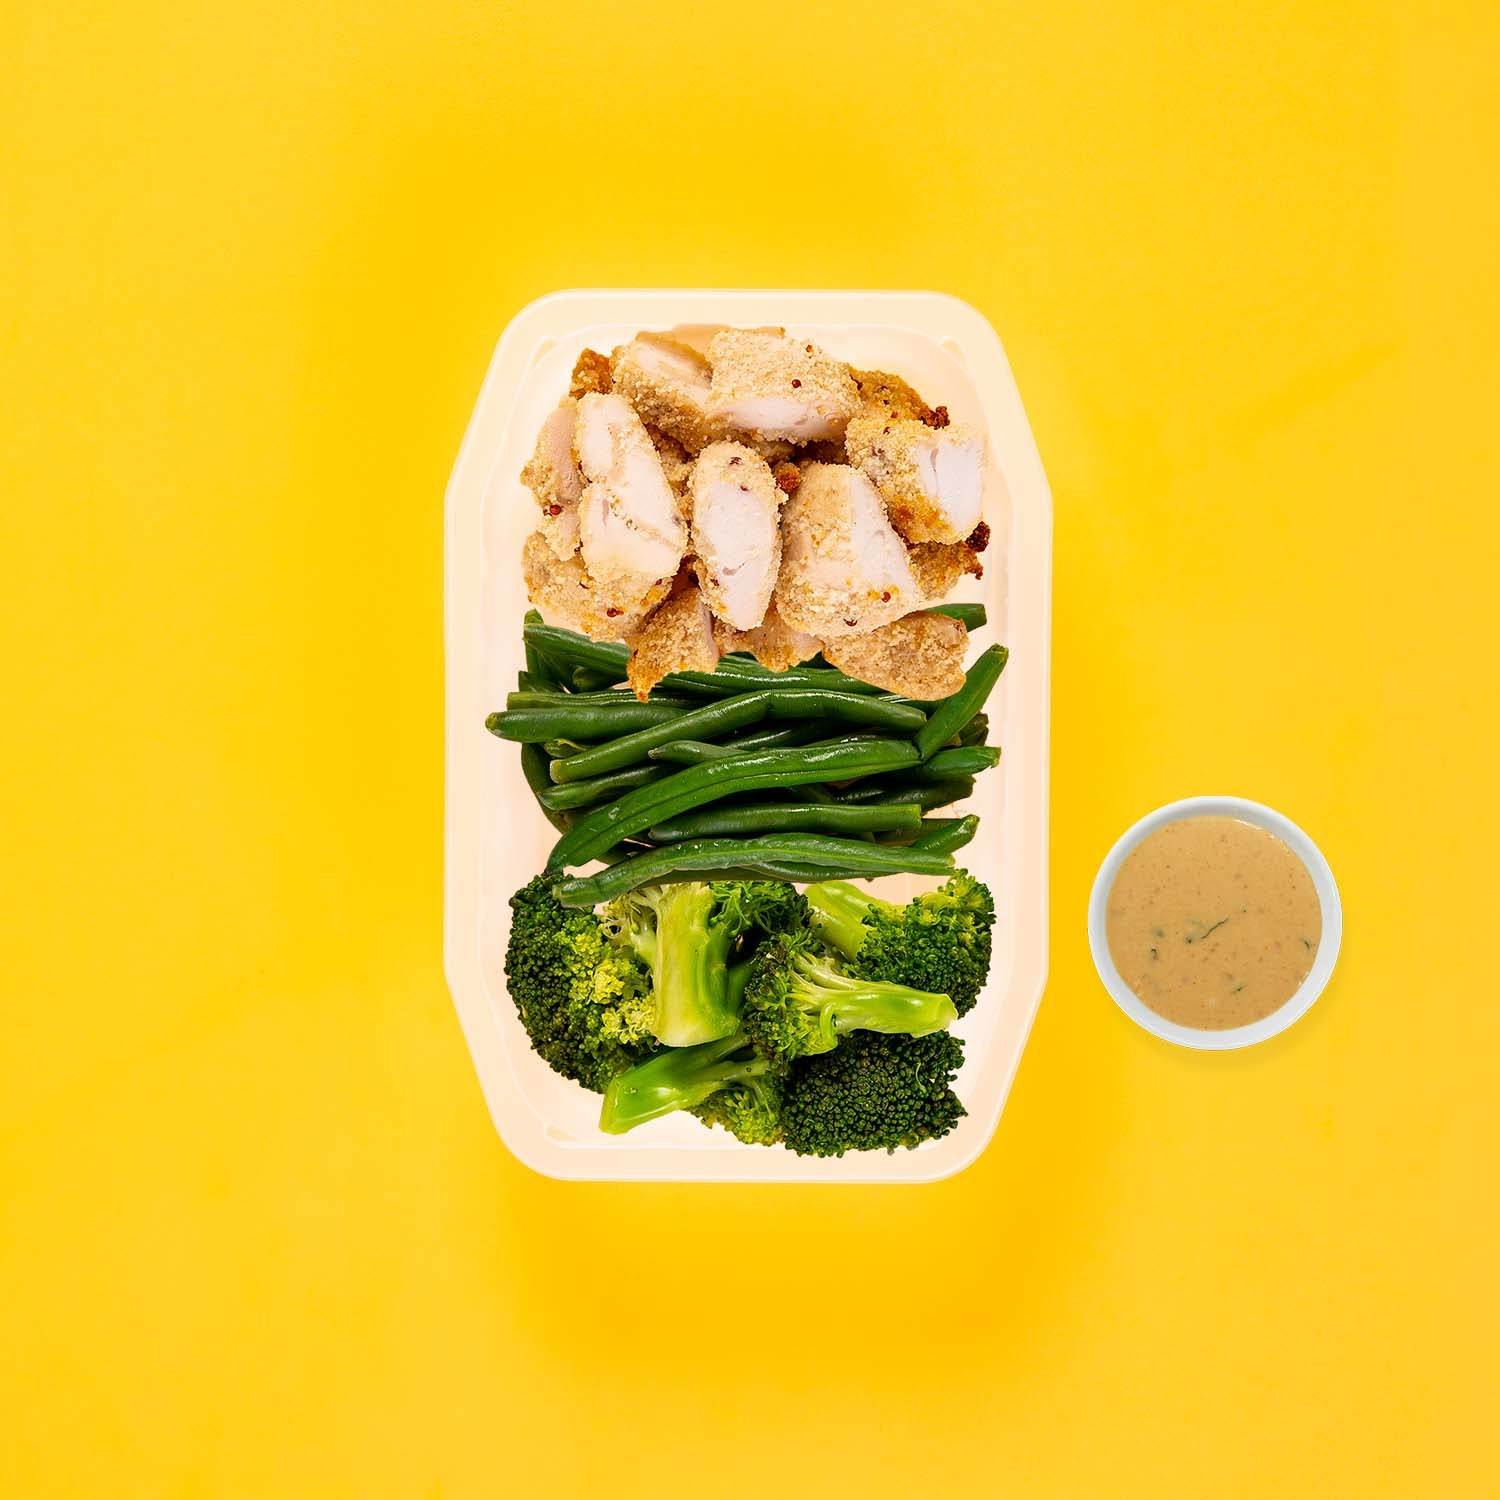 150g Quinoa Chicken Tenders 100g Green Beans 150g Broccoli Satay Sauce